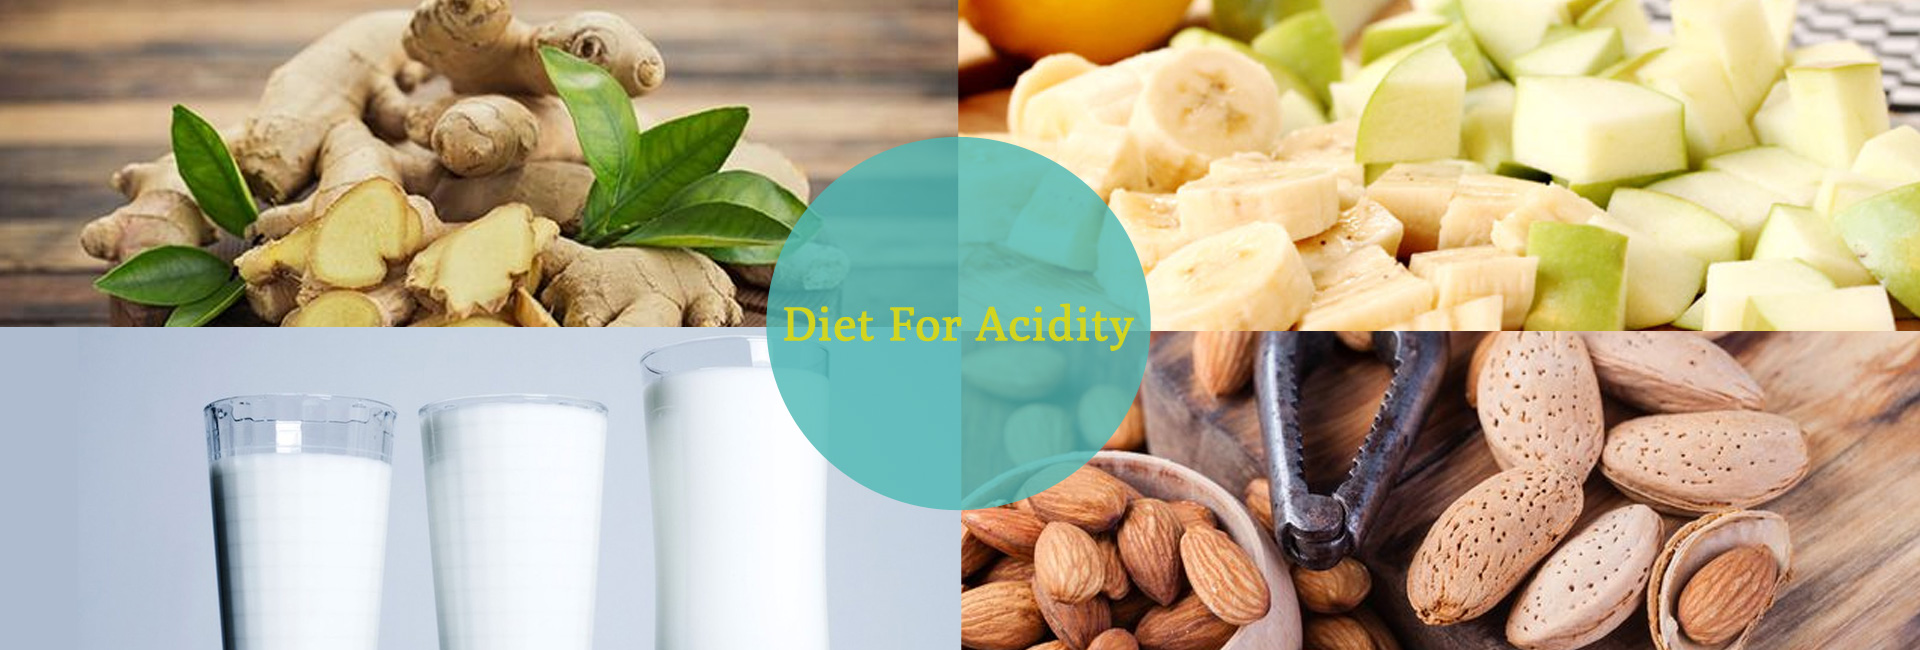 Diet For Acidity In Al Qusaidat